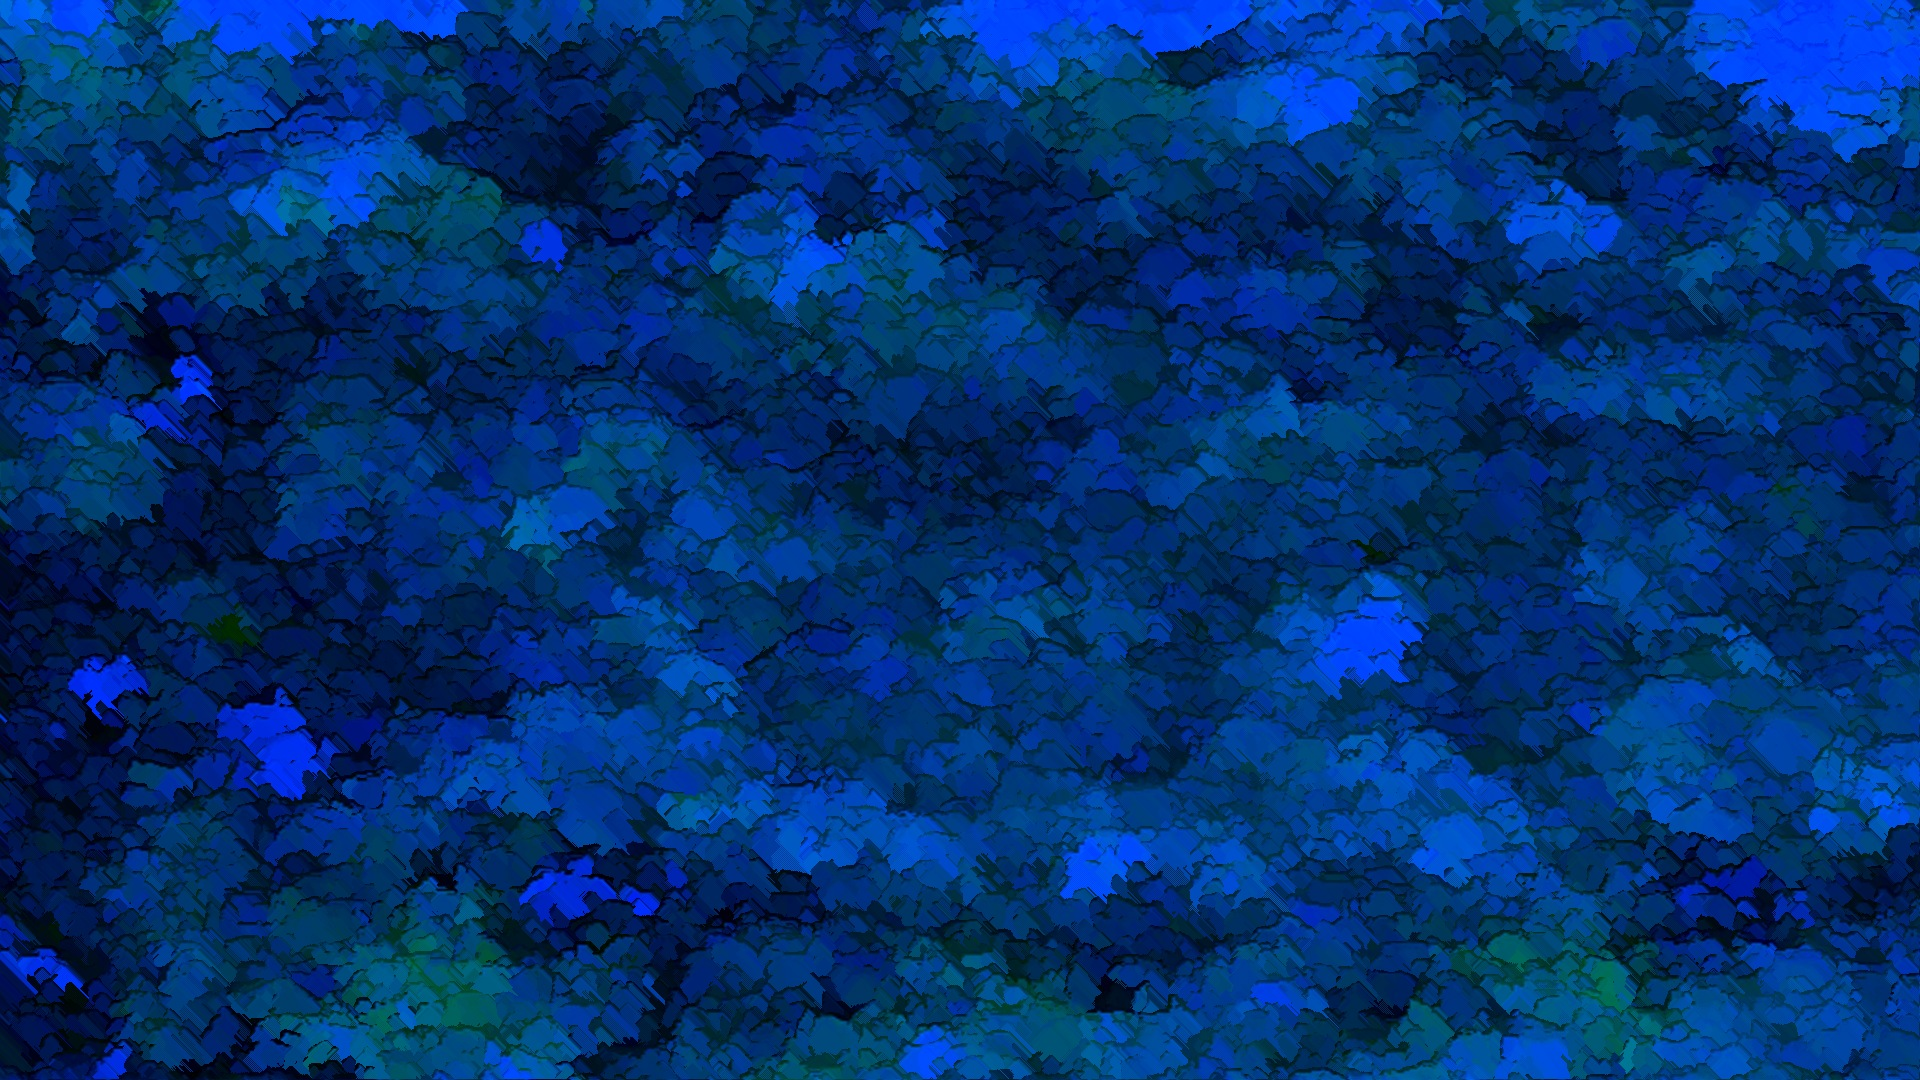 Shades of Blue Textured Background Image 1920x1080